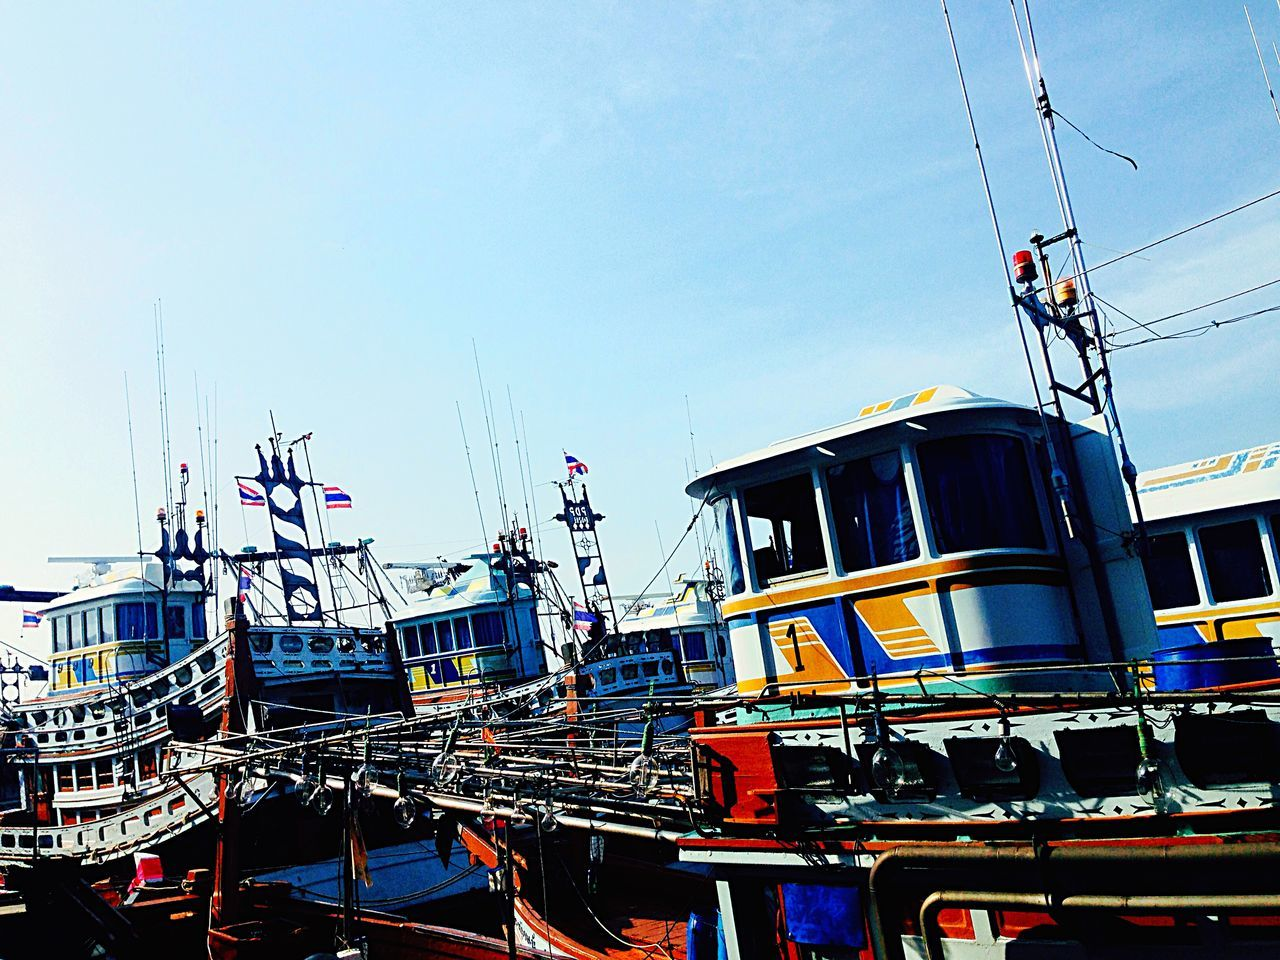 Low Angle View Of Boats Moored In Sea Against Sky